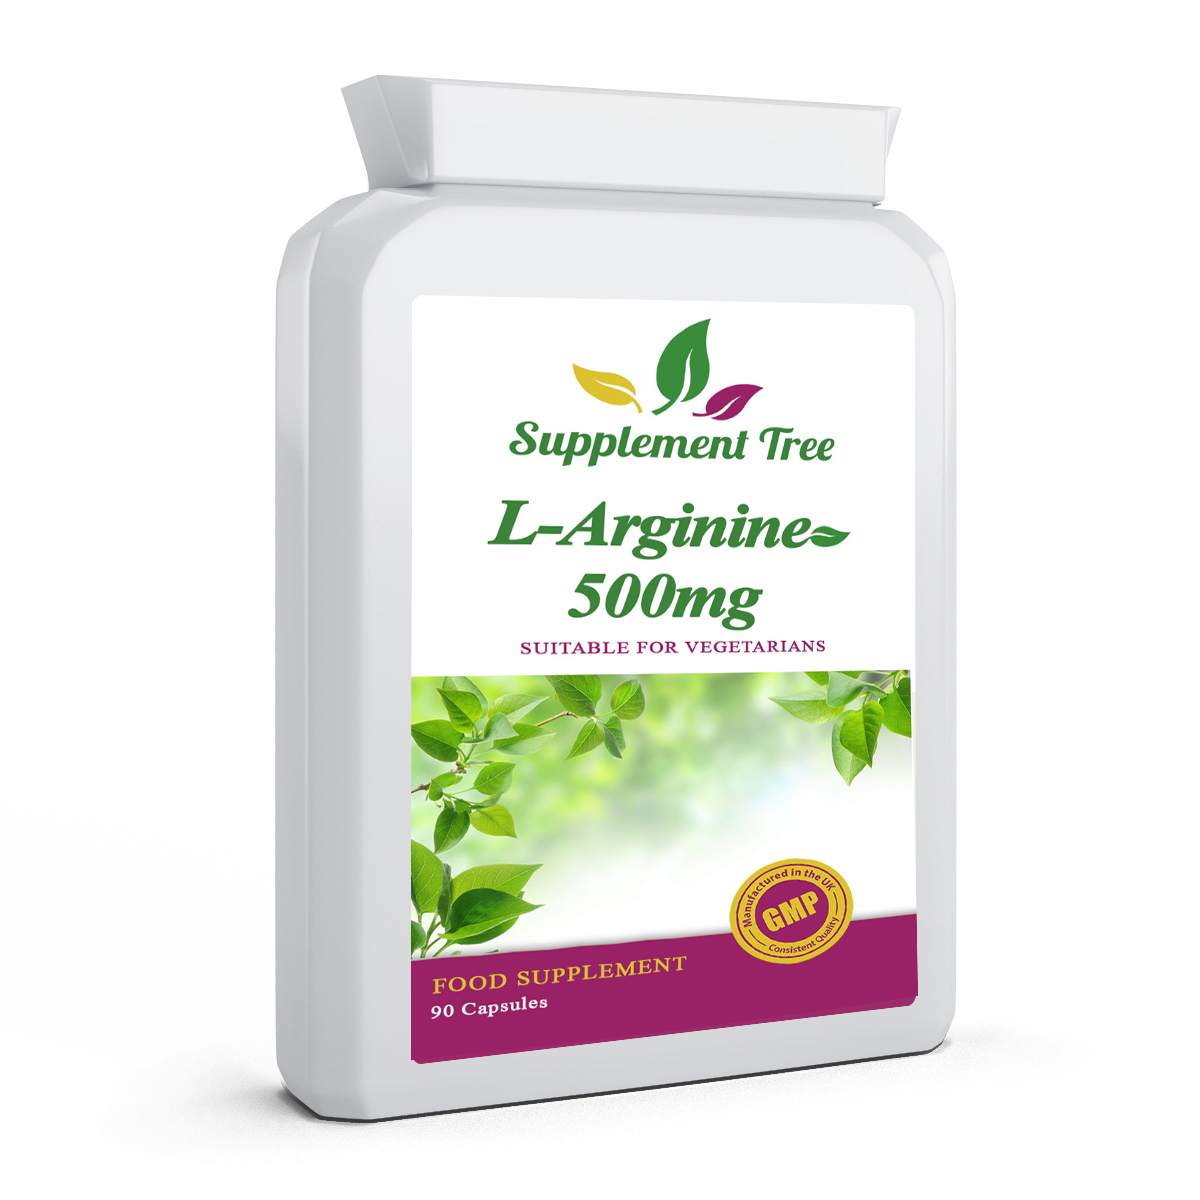 L-Arginine (HCL) 500mg 90mCapsules - Supplement Tree